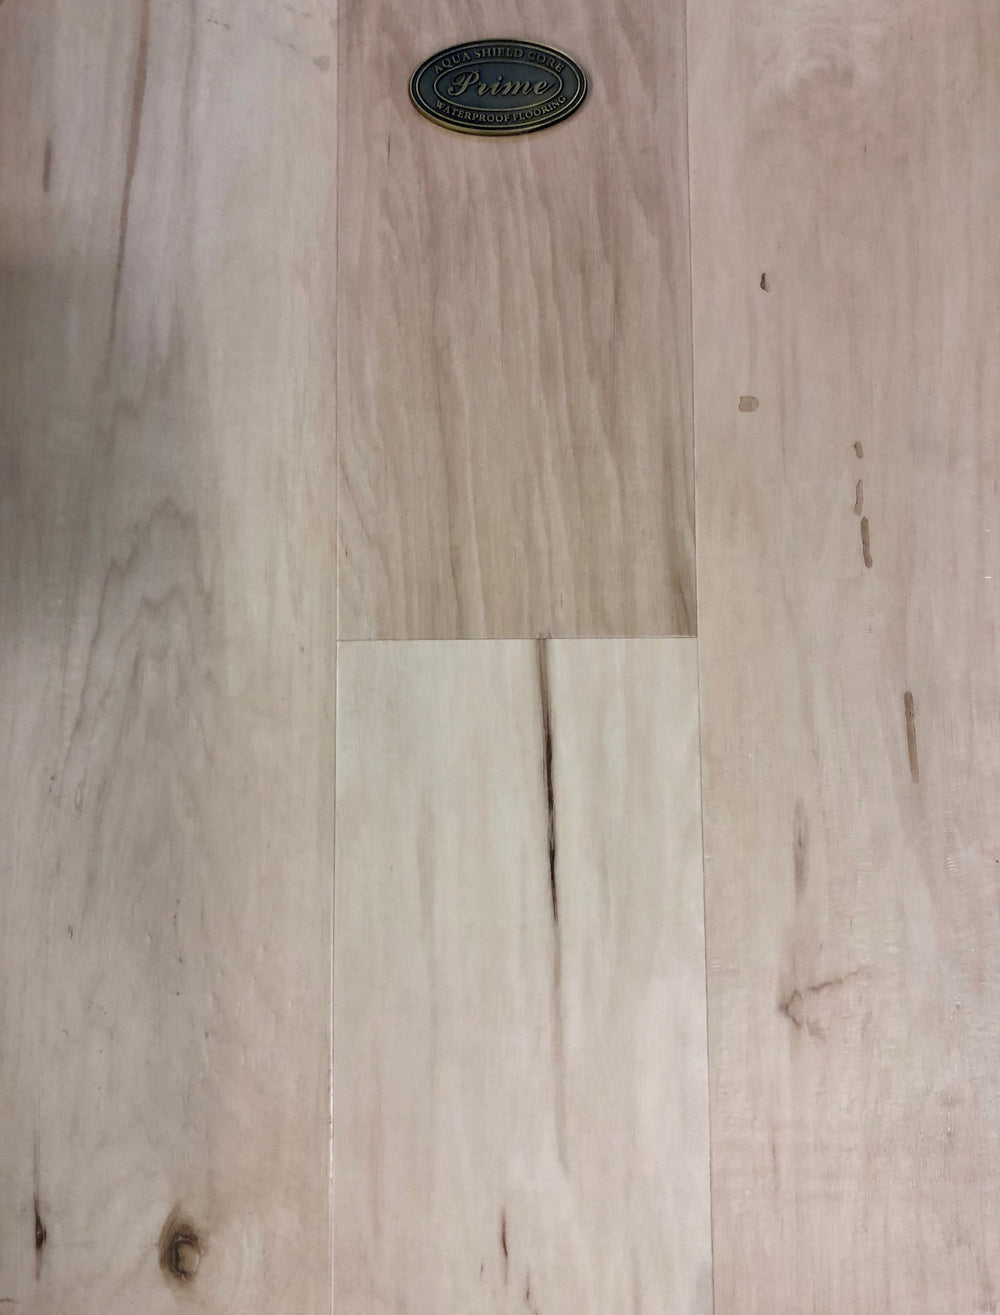 White Rose Waterproof Flooring by Prime